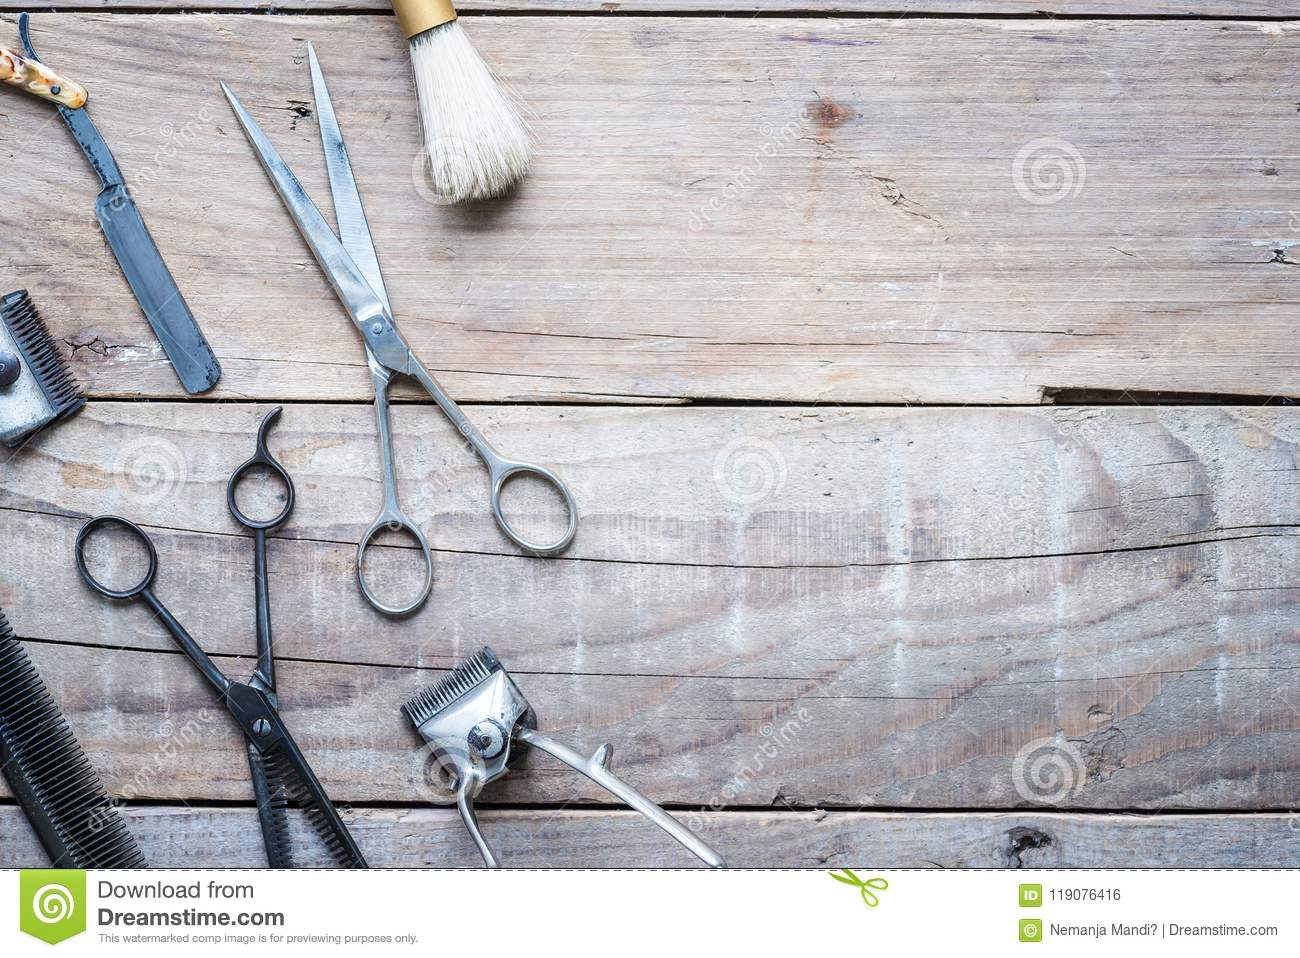 Old Vintage Barbershop Tools On Wooden Table Stock Photo - Image of ...